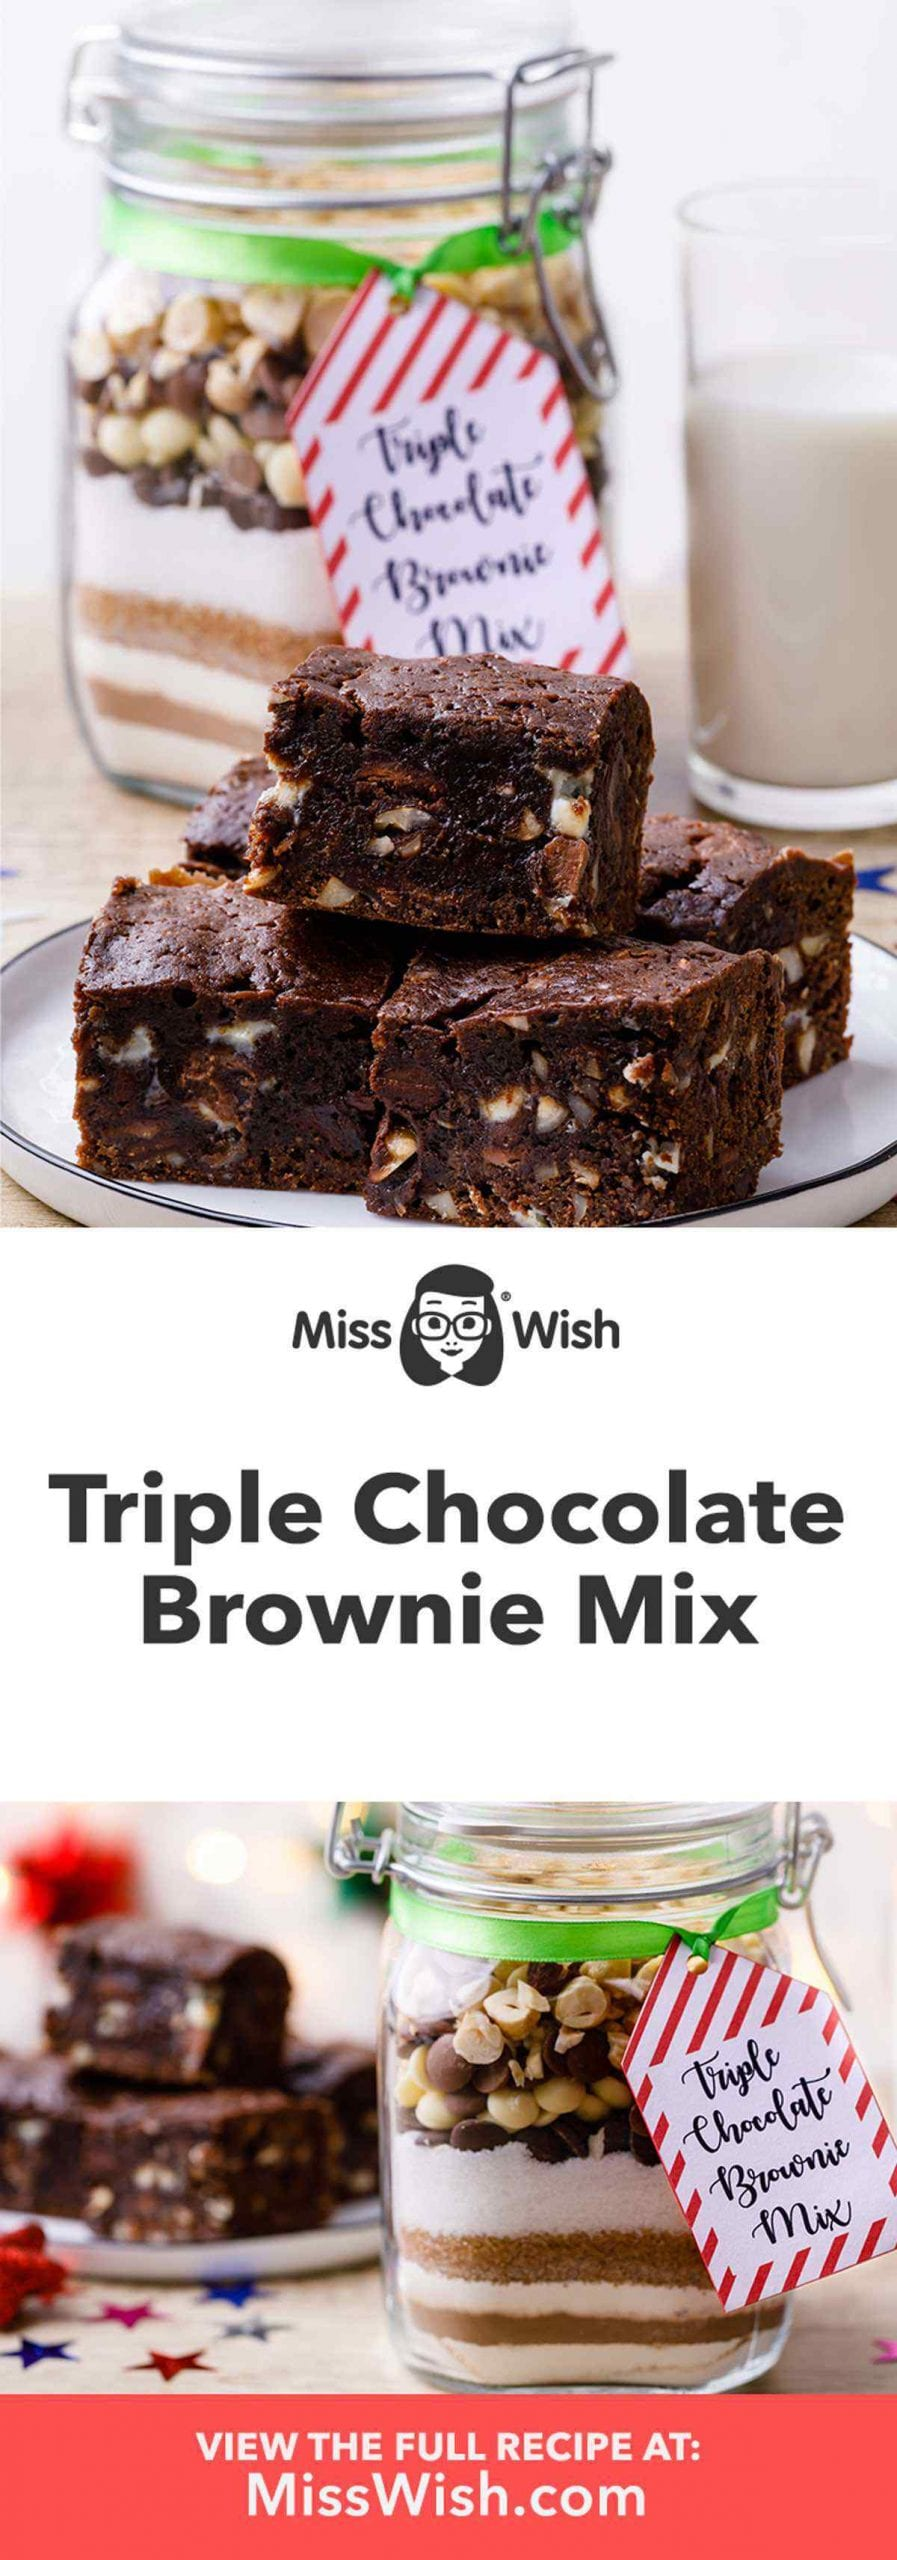 Triple Chocolate Brownie Mix